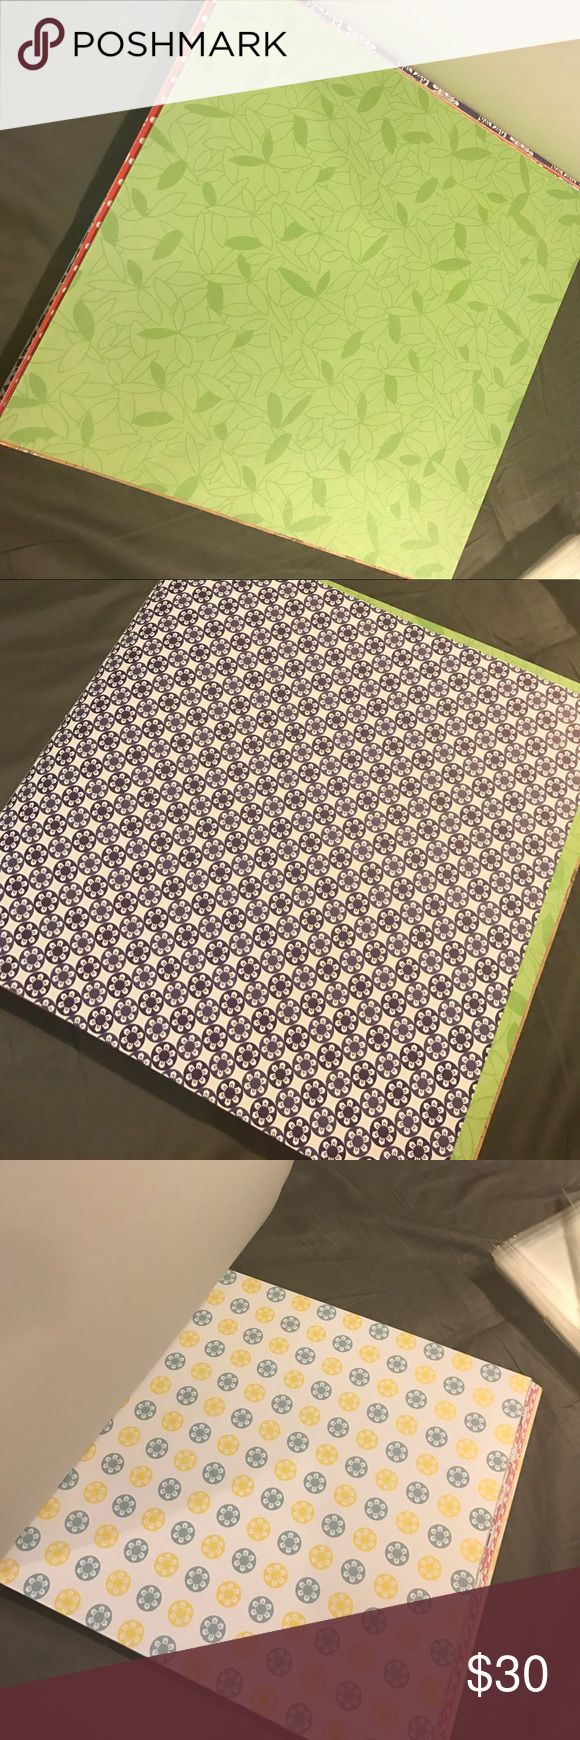 Scrap booking supplies! Assortment of scrapbooking paper and 13 clear scrapbook inserts. Over 100 sheets of scrapbooking paper. Open to offers Other